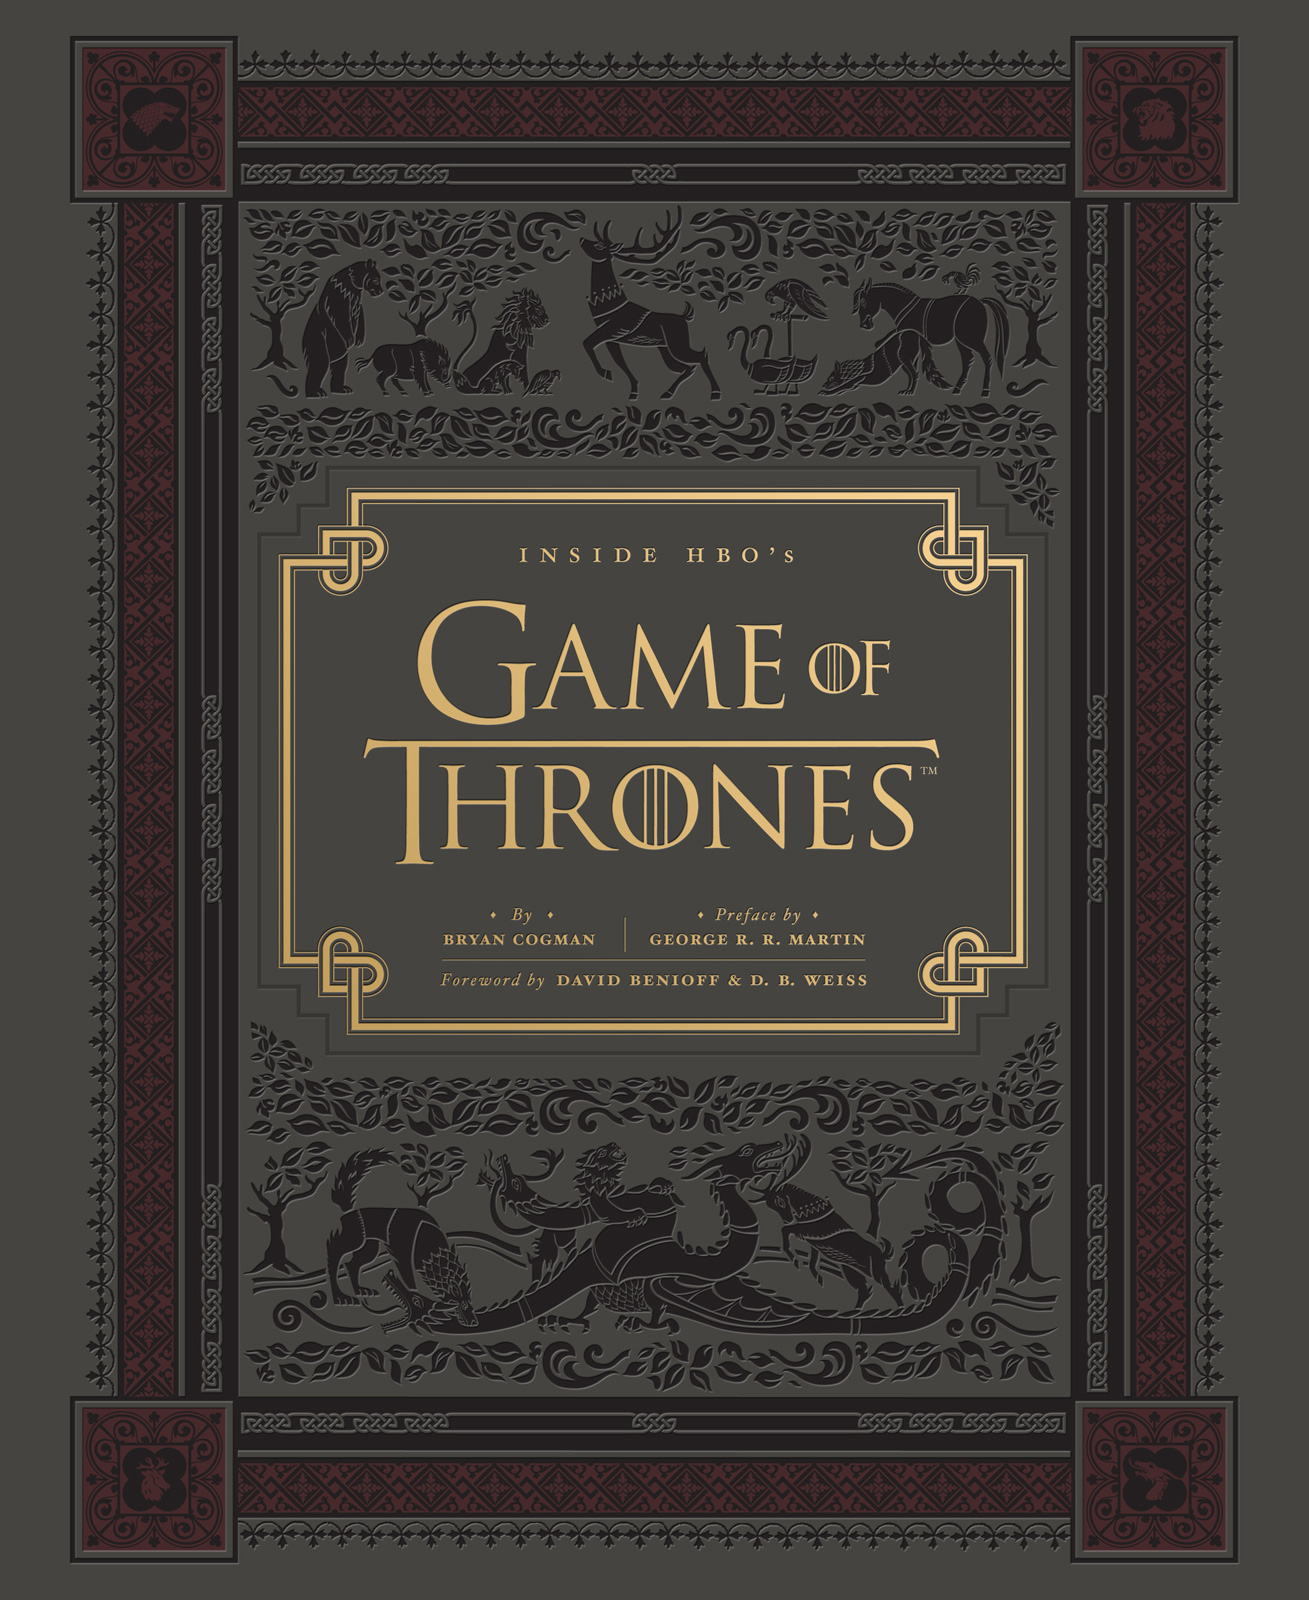 Inside HBO's Game of Thrones By: Bryan Cogman,George R. R. Martin